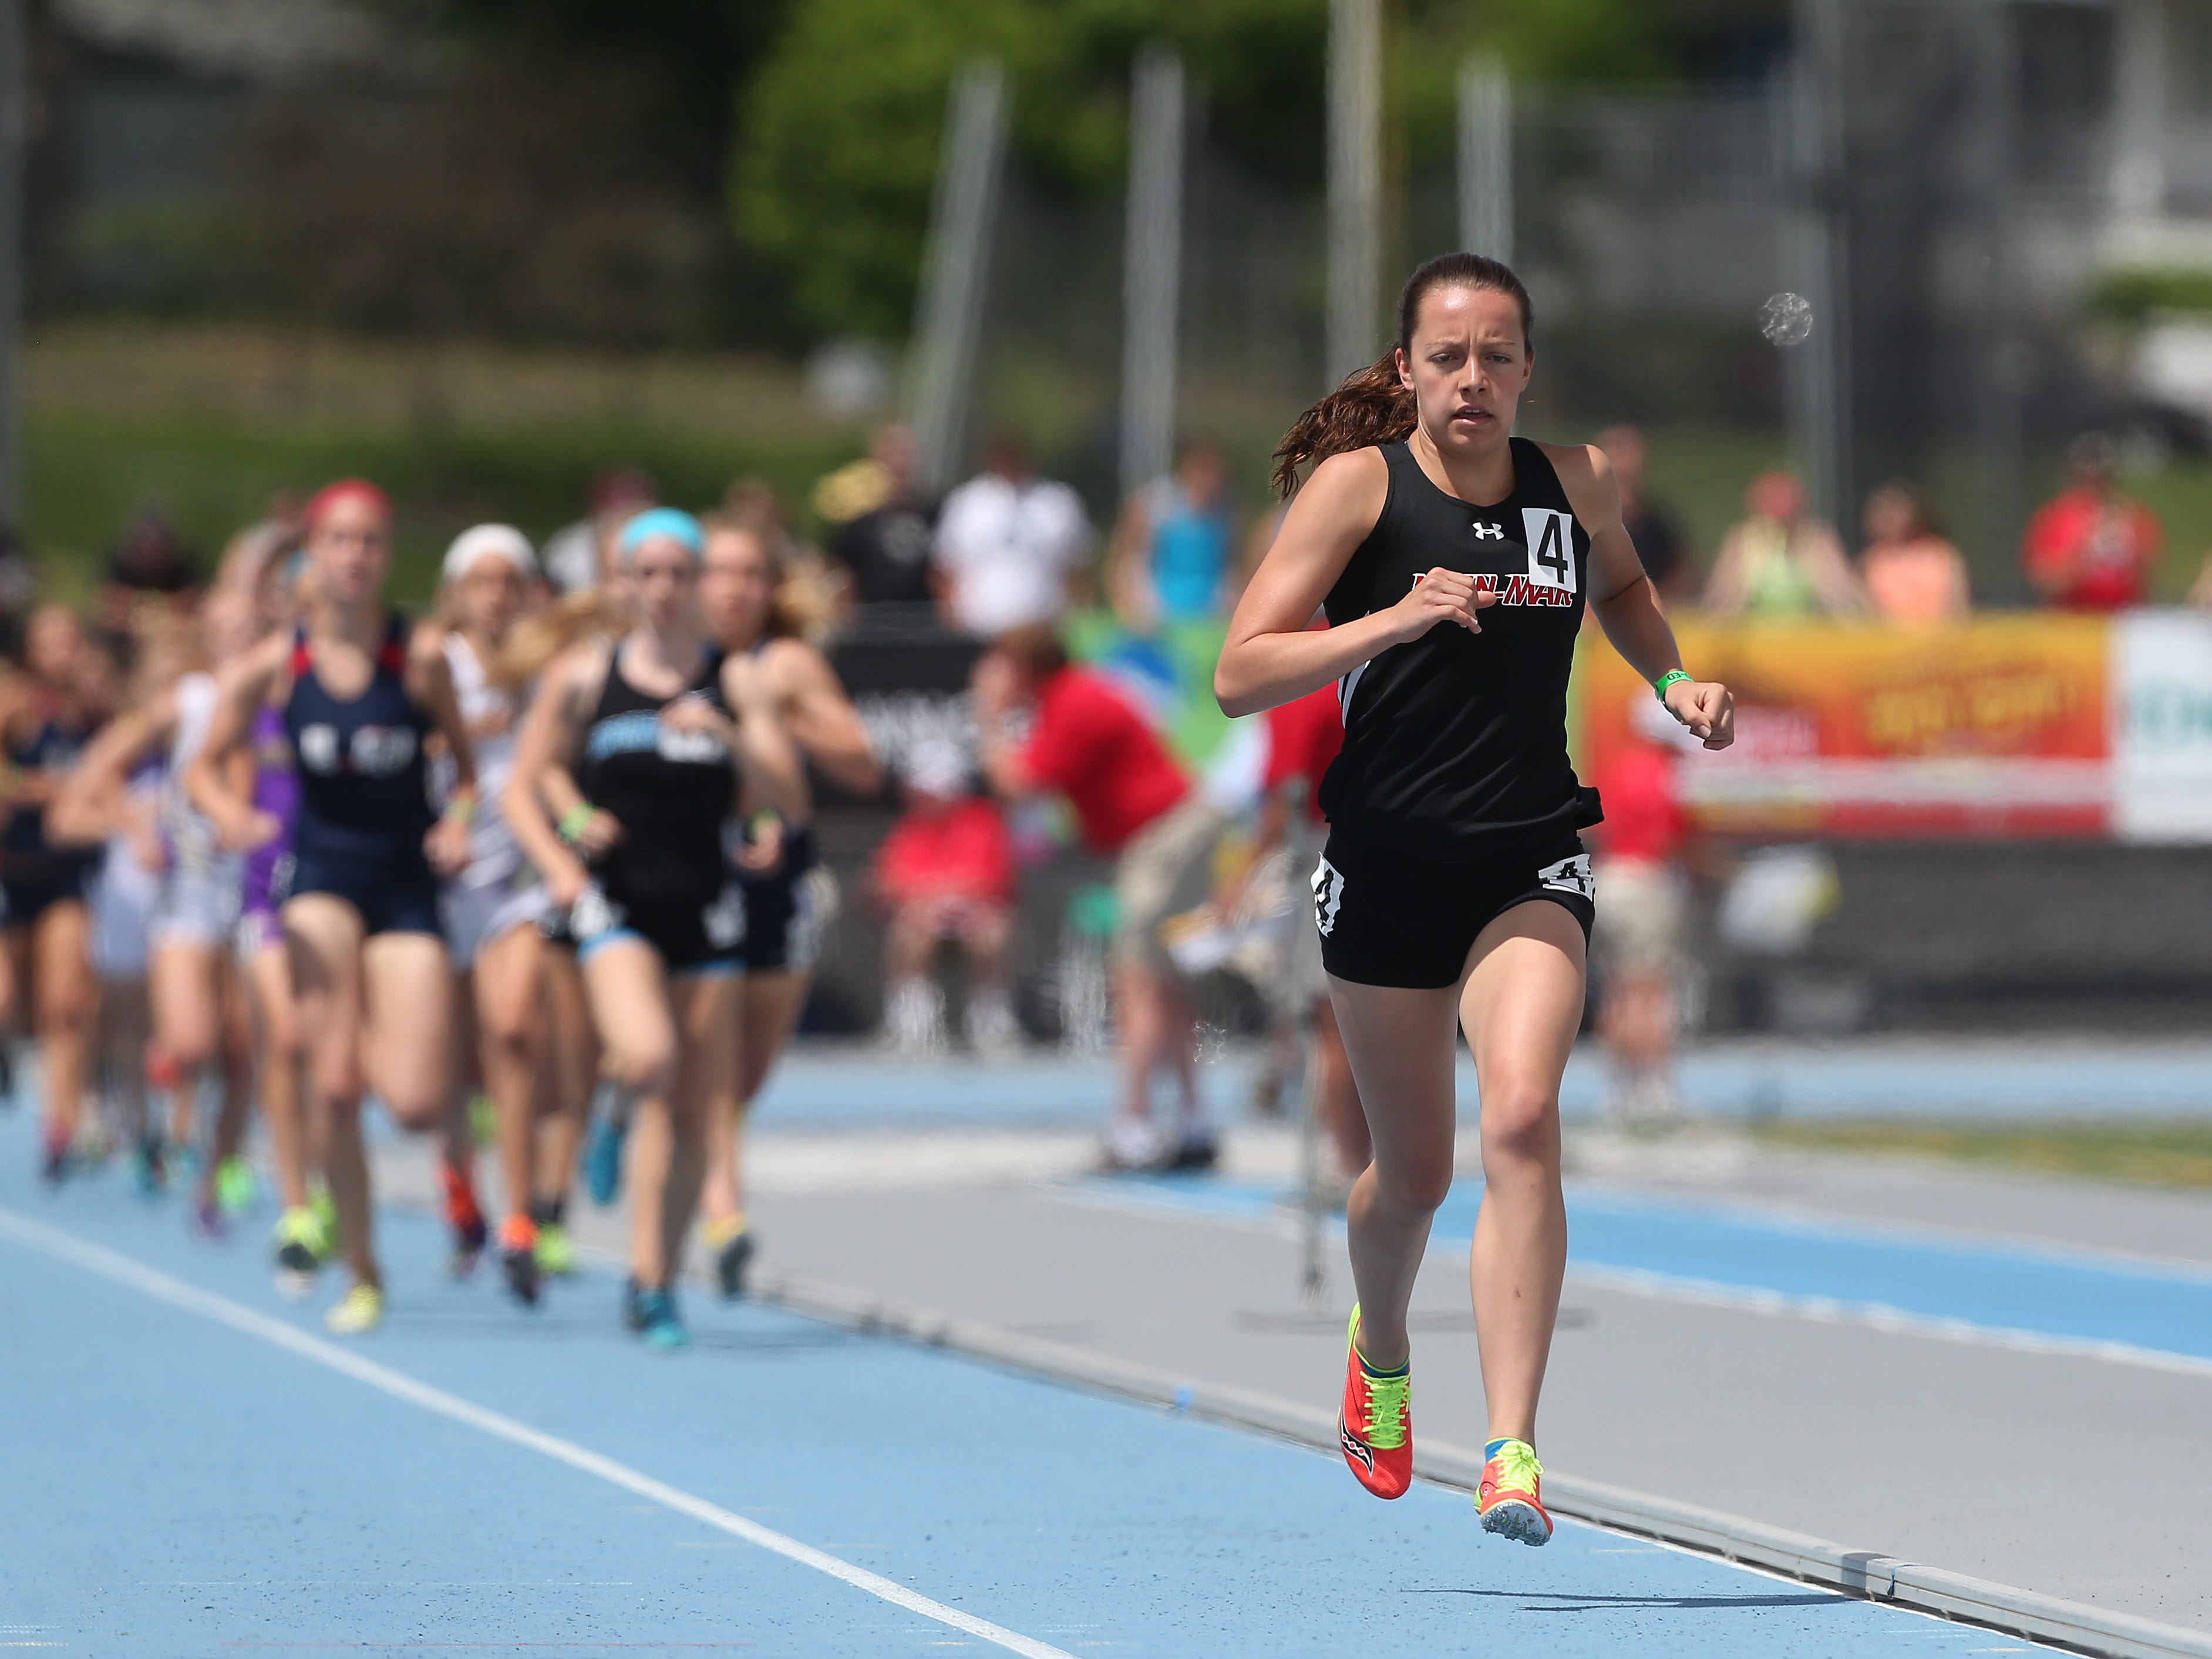 Linn-Mar sophomore Stephanie Jenks won the 1500-meter run in Iowa Class 4A on Saturday, May 24, 2014, during the Iowa state high school track and field meet at Drake Stadium in Des Moines.